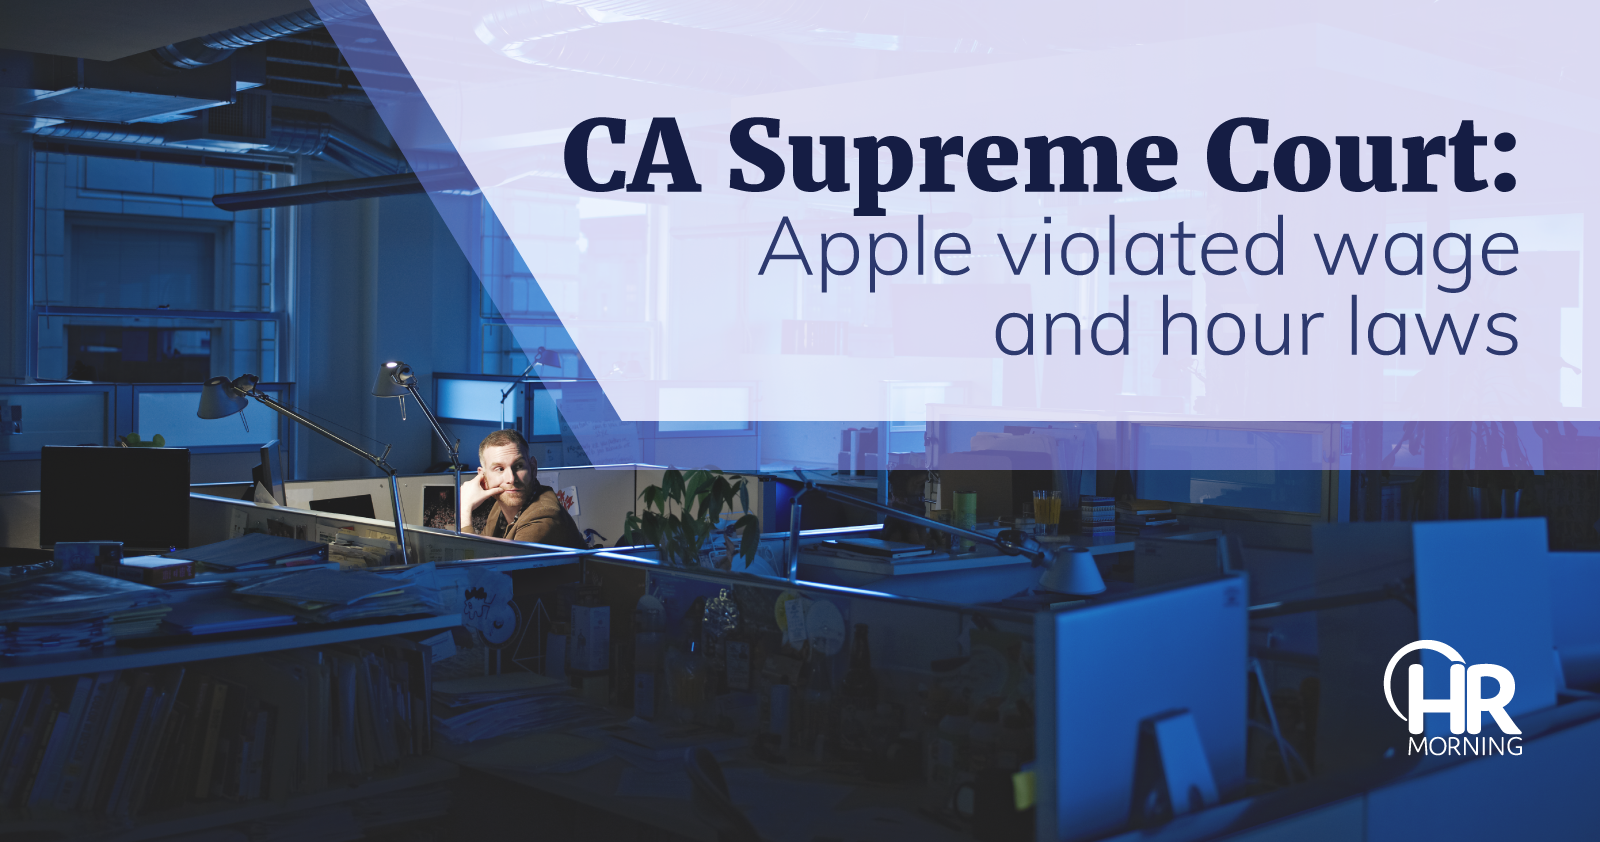 CA Supreme Court Apple violated wage and hour laws